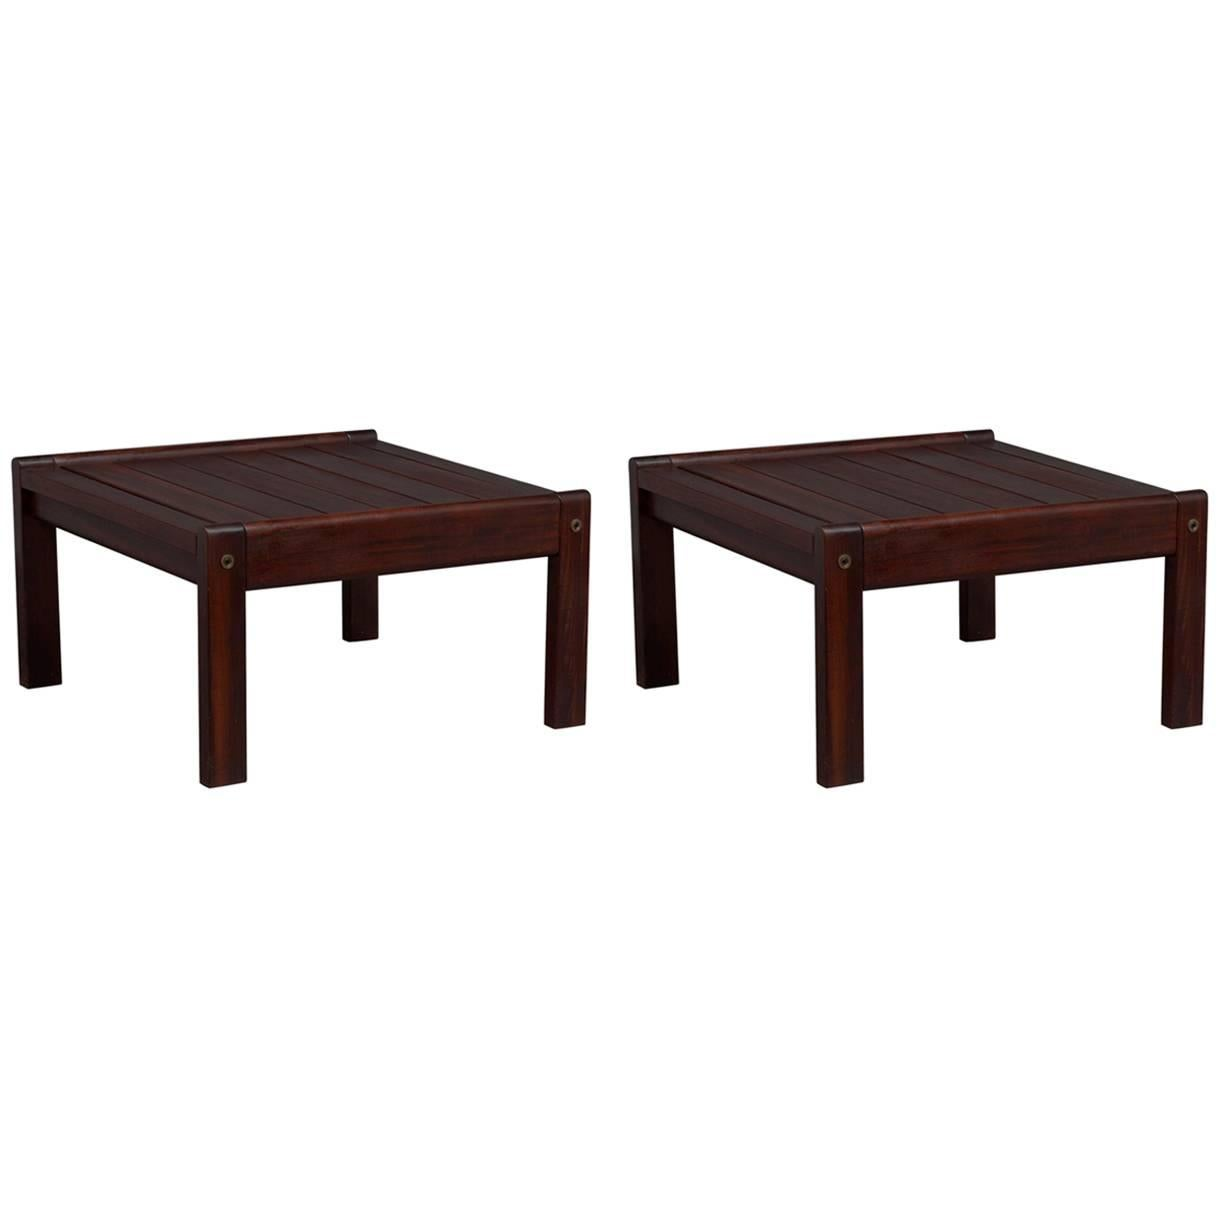 Pair Of Solid Brazilian Rosewood End Tables Attributed To Sergio Rodrigues 1